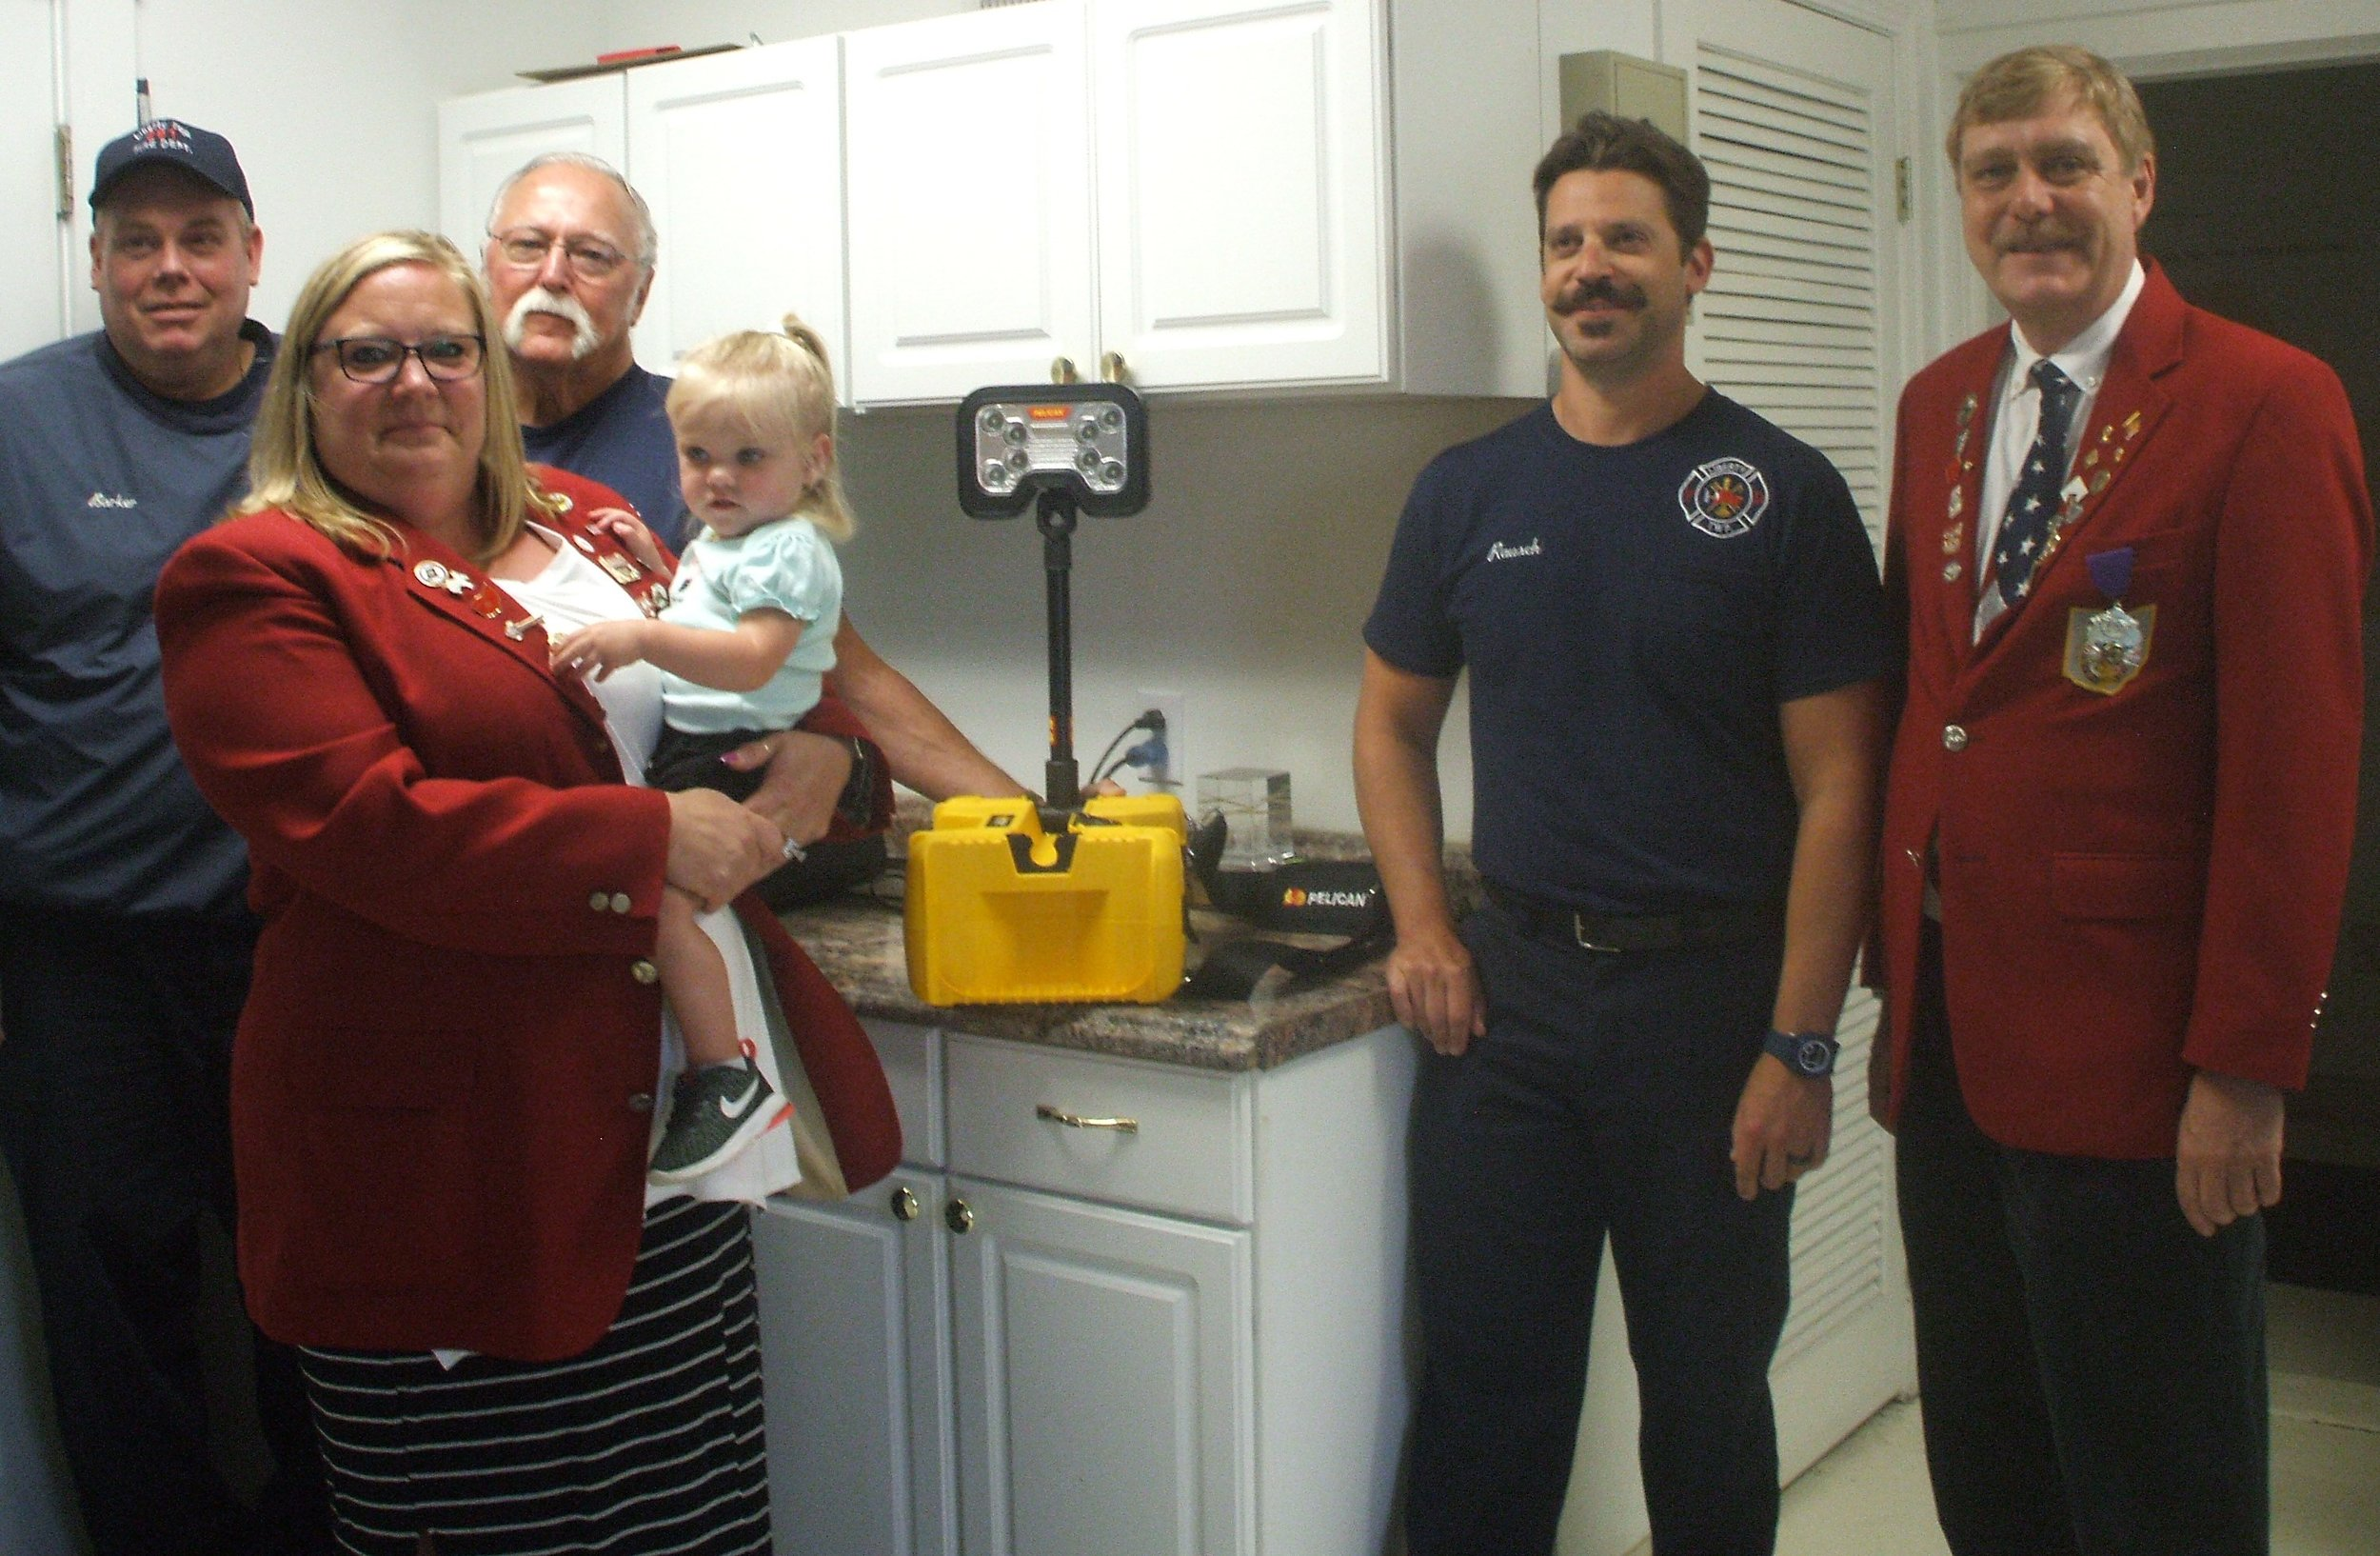 Shown presenting the Lighting system to the Fire Department are from left to right are:  Firefighter Dale Barker, Exalted Ruler Billie Jo Humble (holding Autumn), Liberty Township Fire Chief Lloyd Segner, Firefighter/Medic Jeremy Rausch, and Community Service Chairman Kermit Morse, III